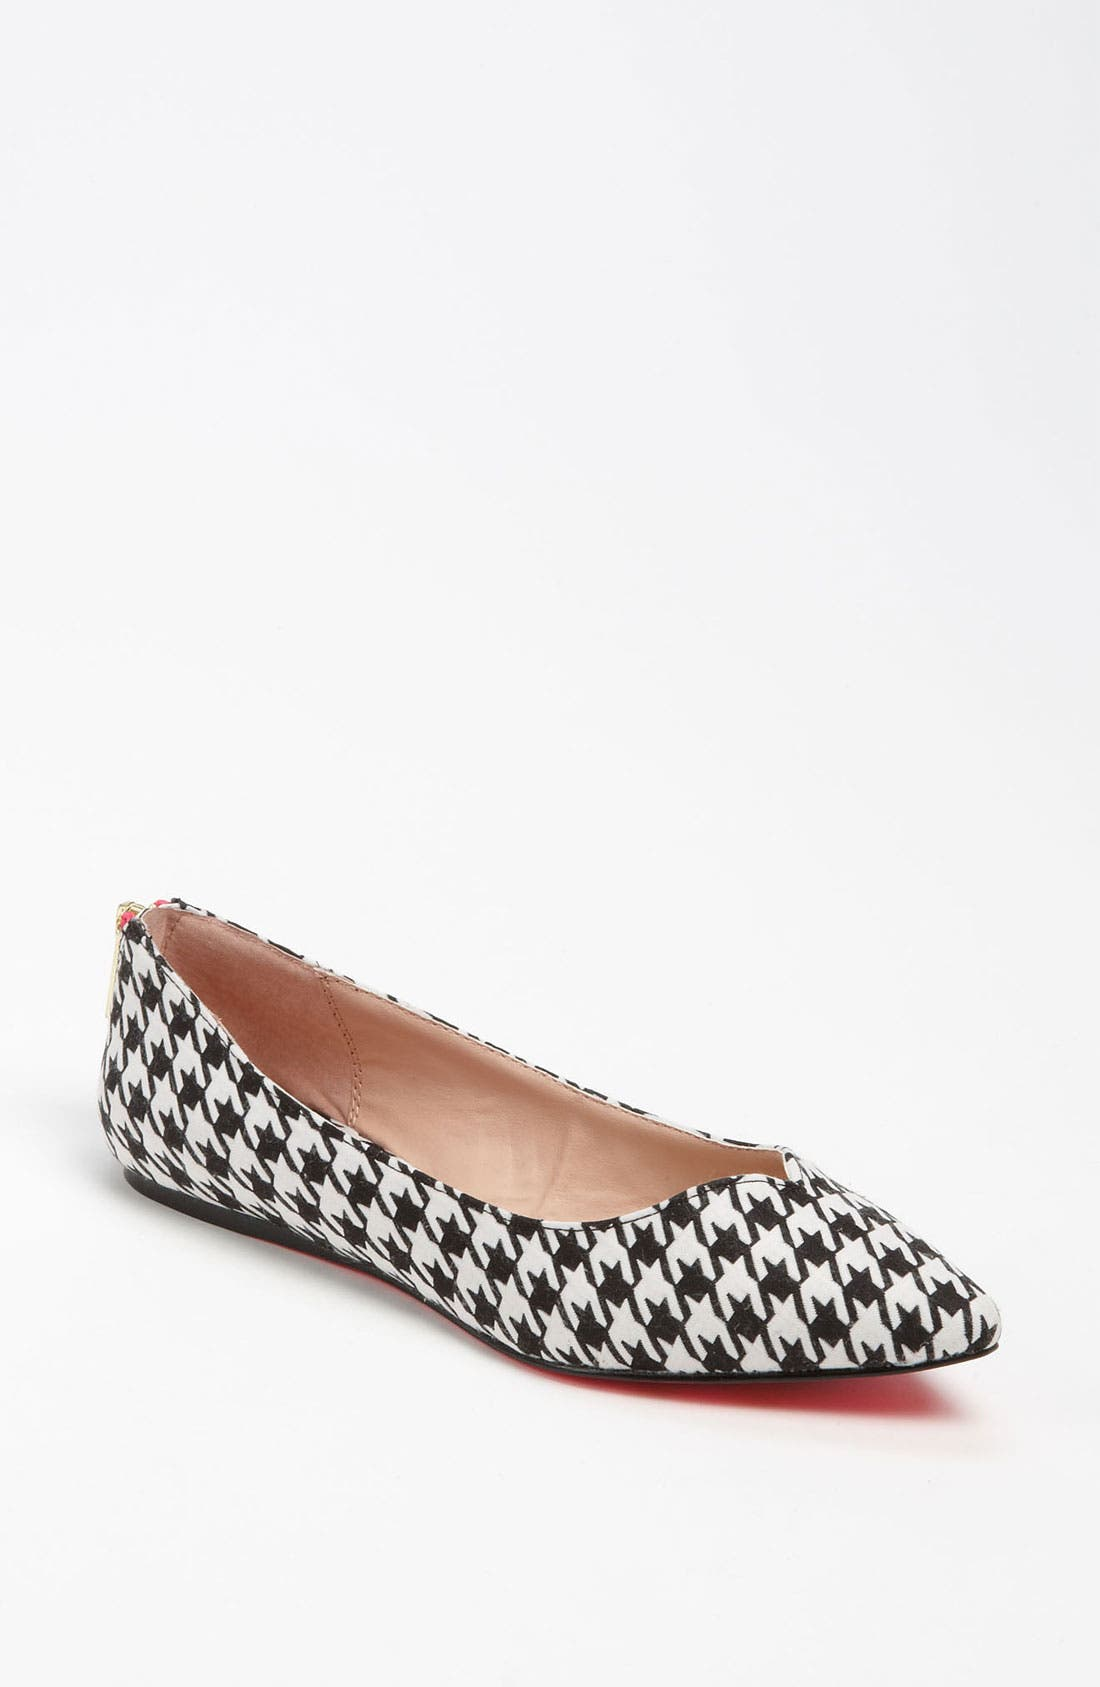 Main Image - Betsey Johnson 'Lilliann' Flat